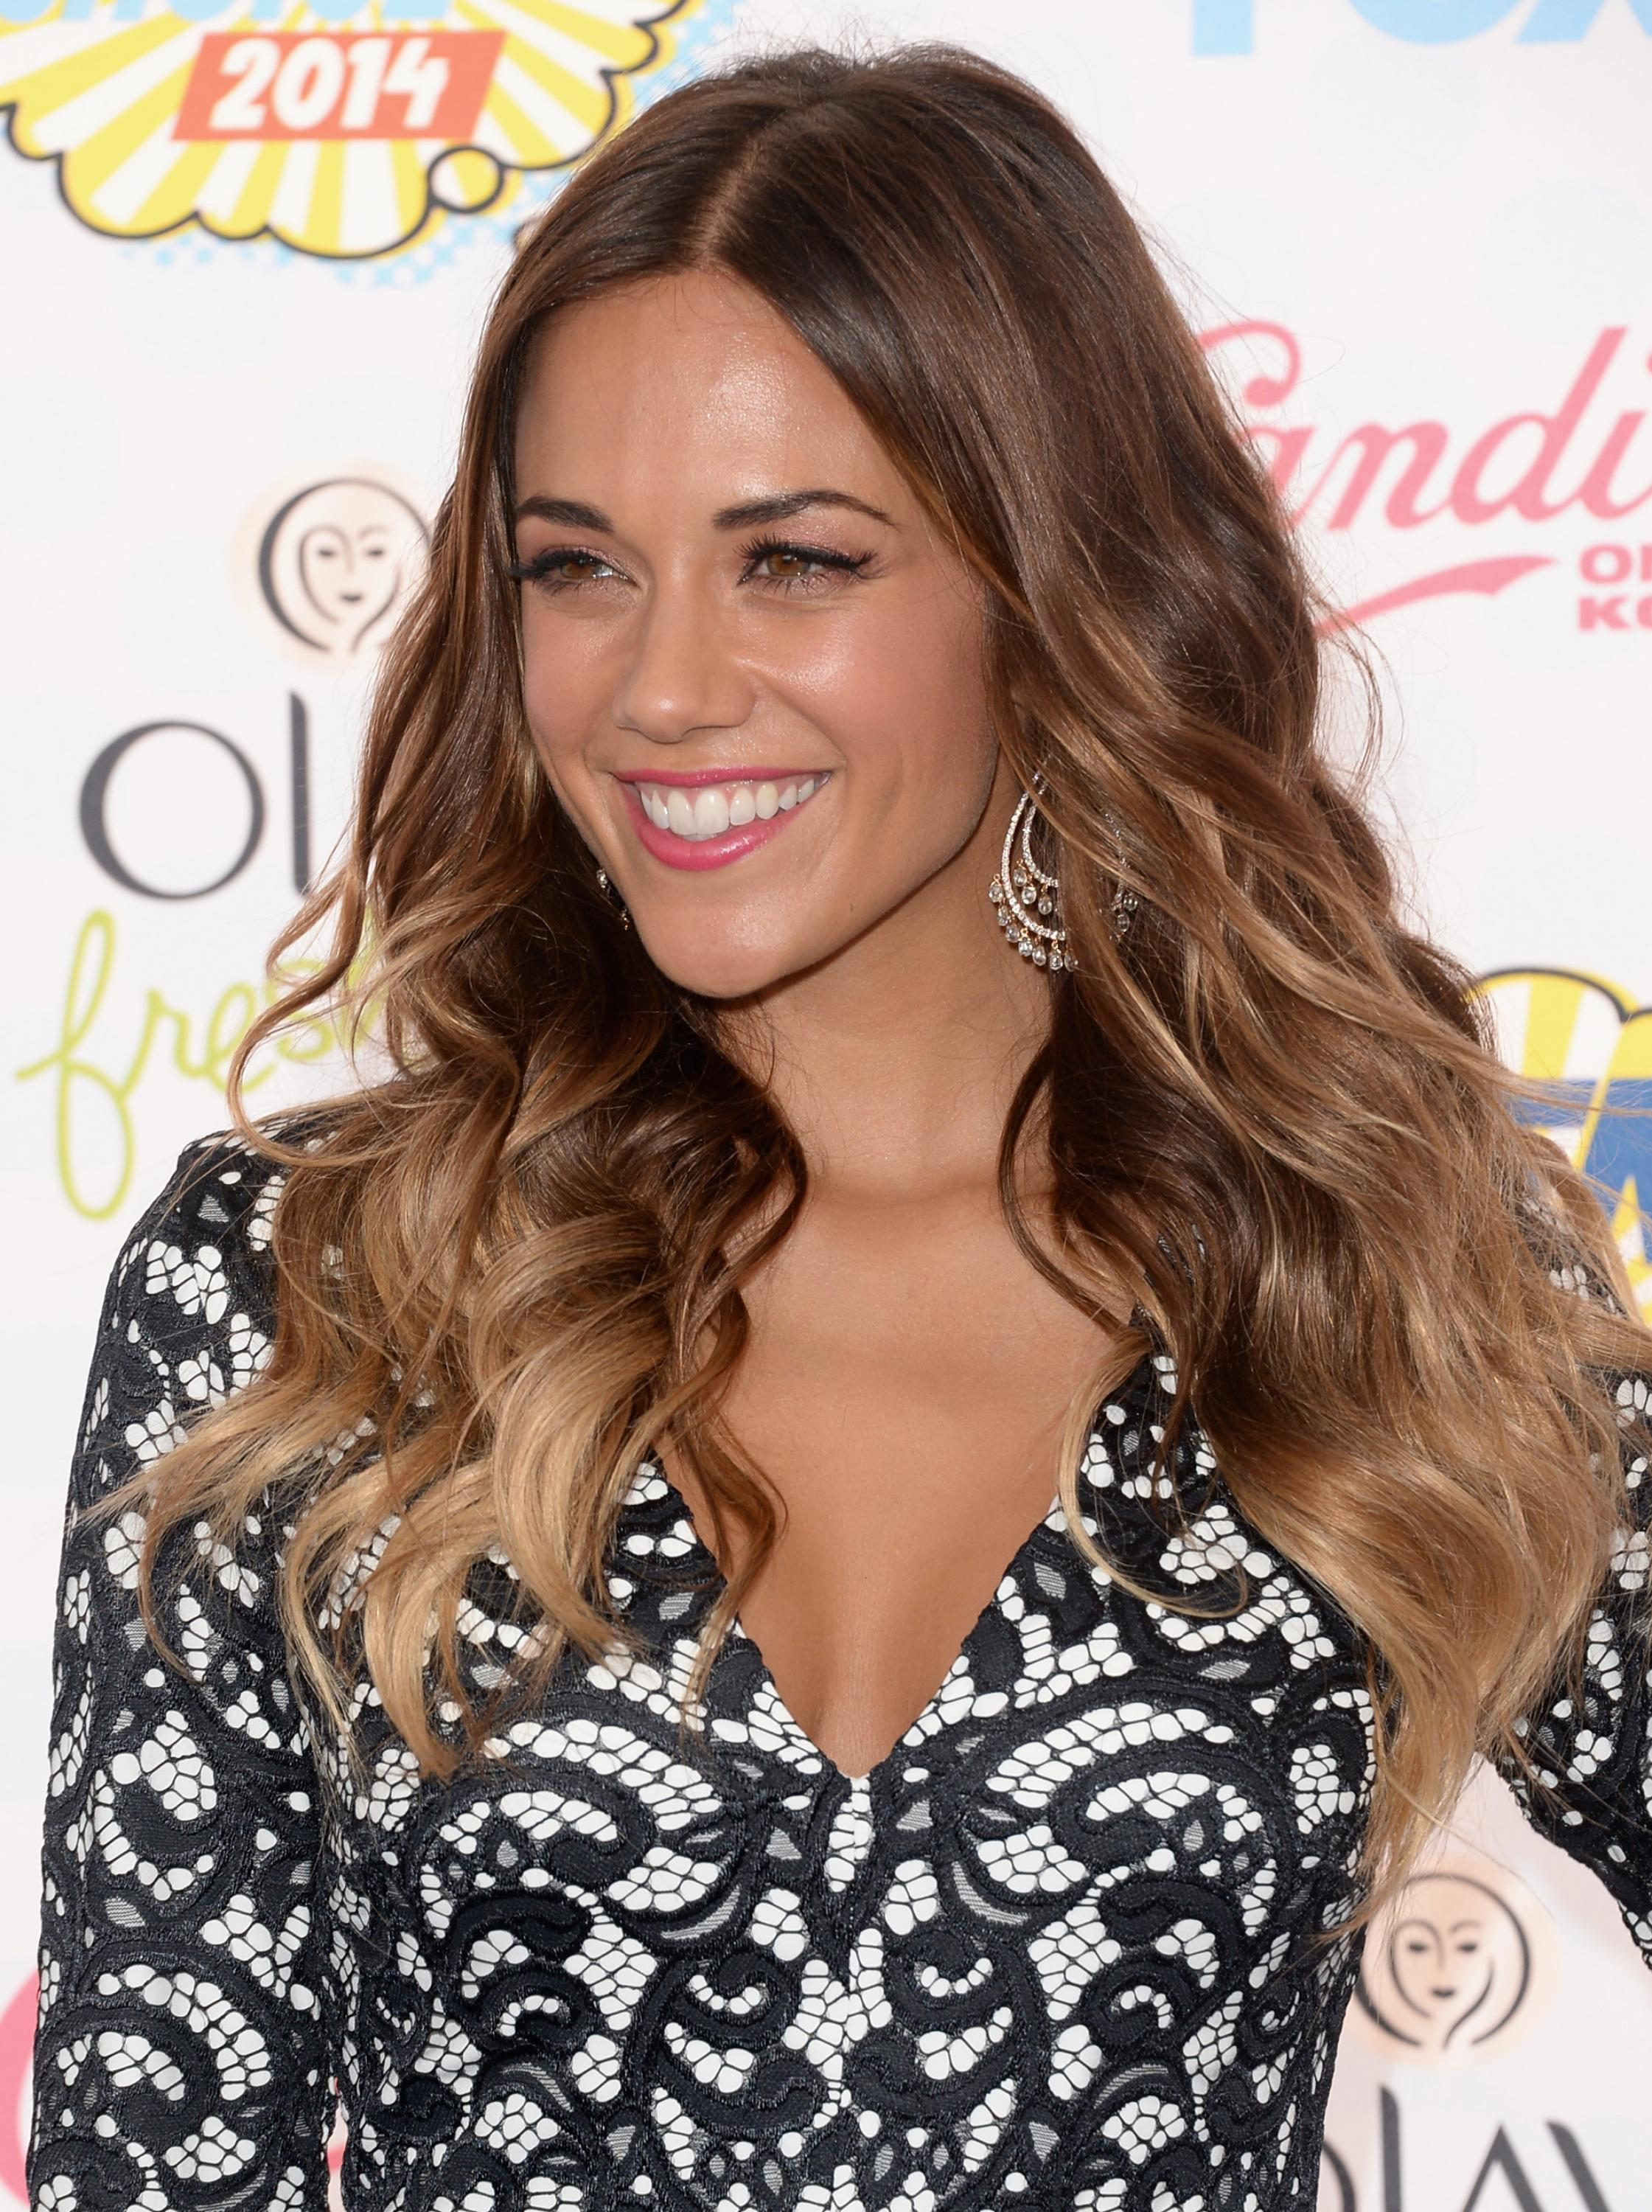 Jana Kramer attending the 2014 Teen Choice Awards, Los Angeles, August 10, 2014